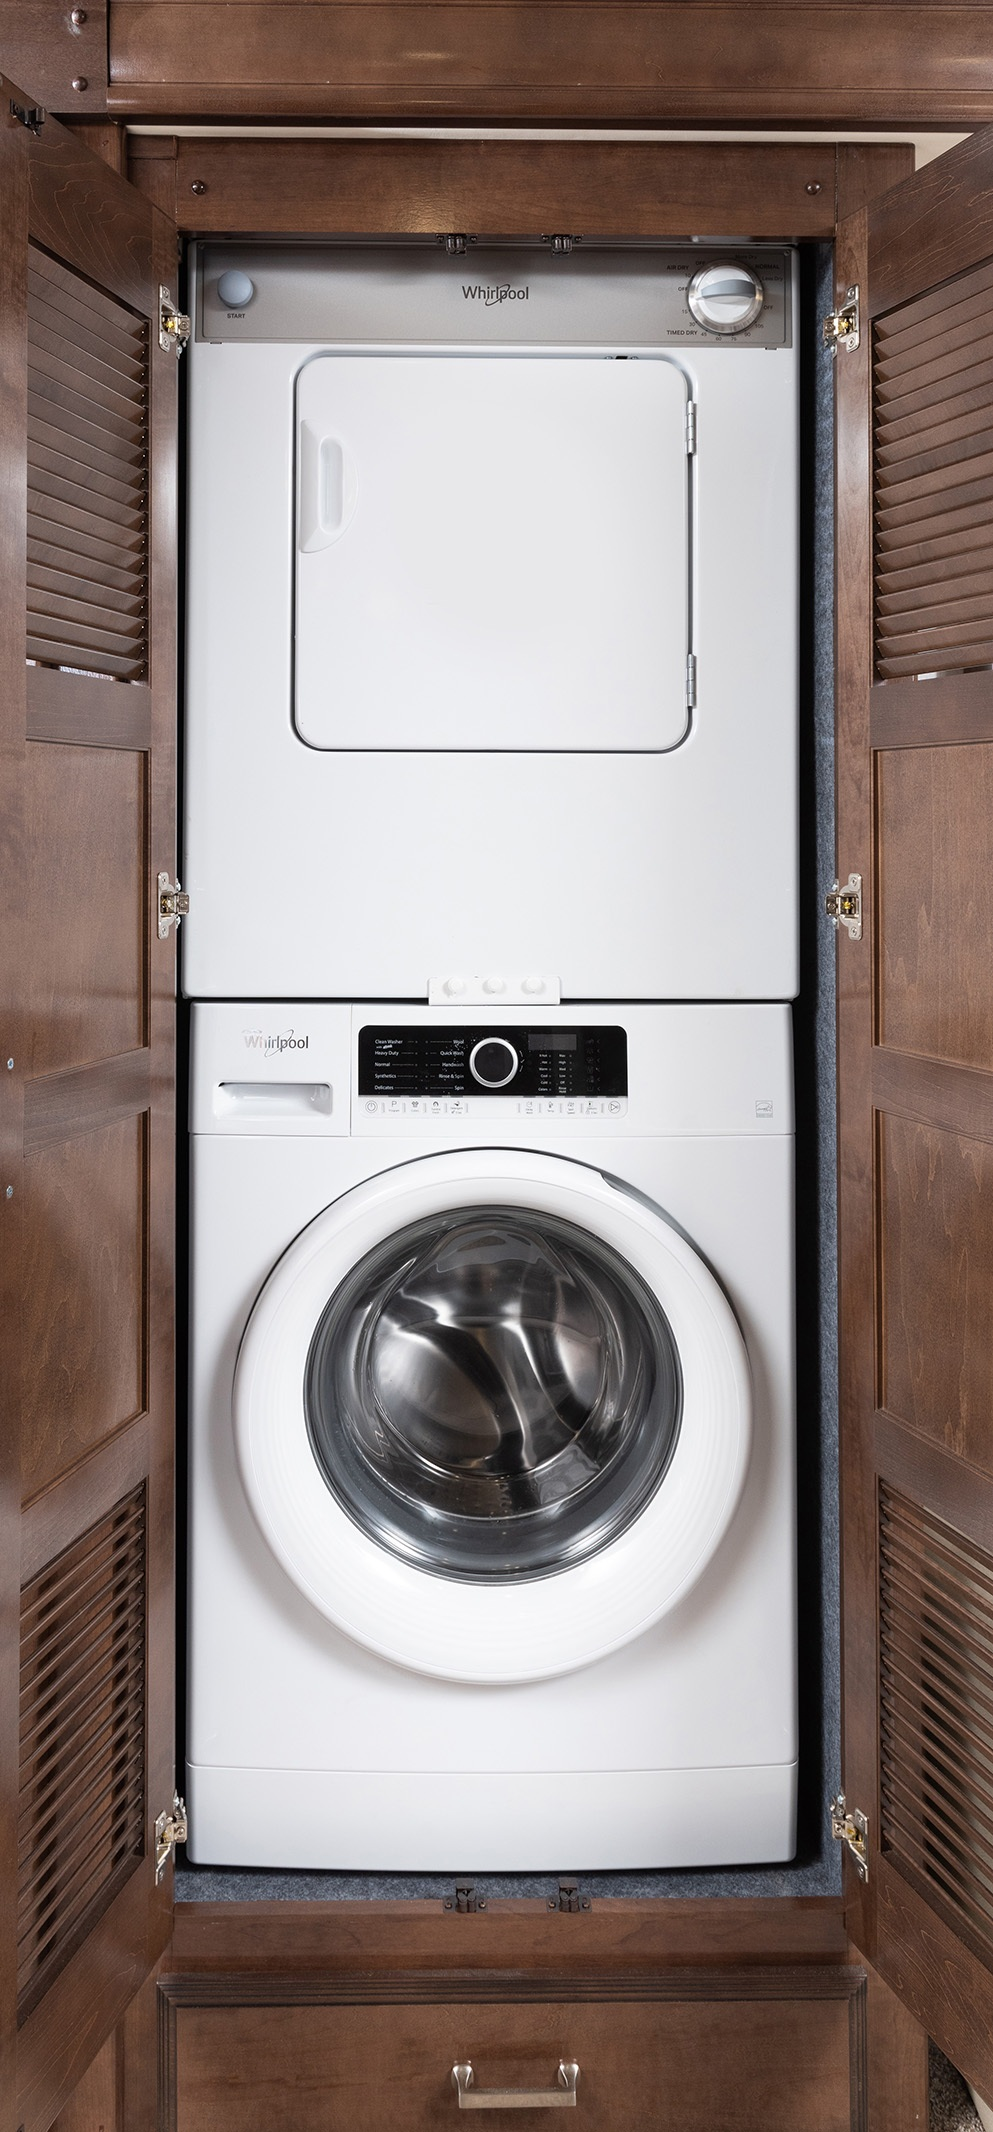 13 washer dry PALXE38 K vapor oxford709